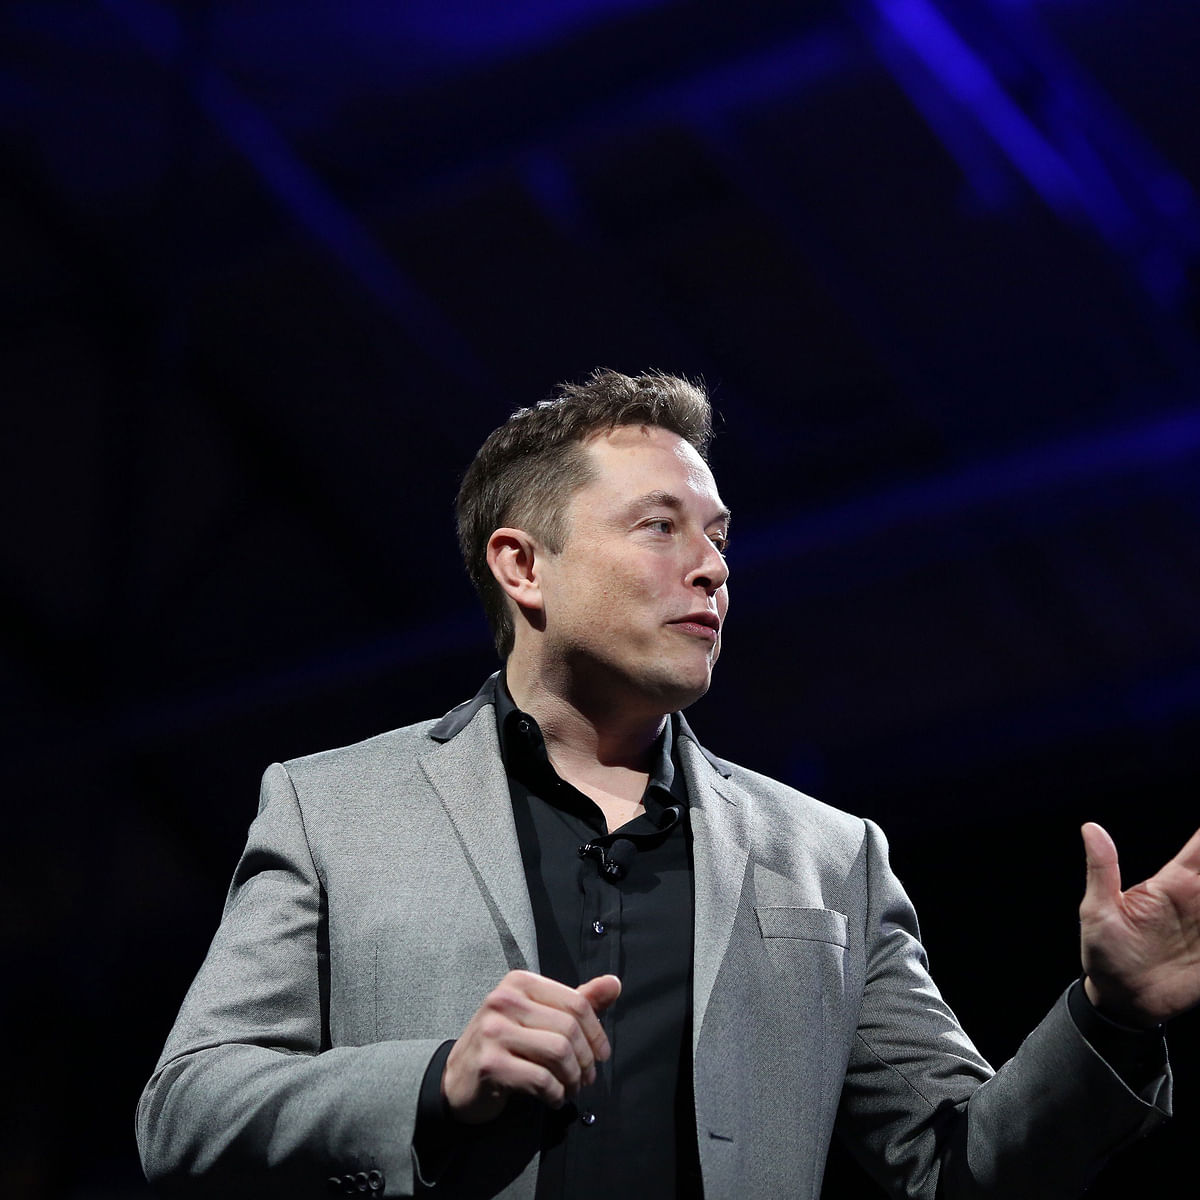 Elon Musk's aid sought; 'Lost all savings to imaginary coins', say investors